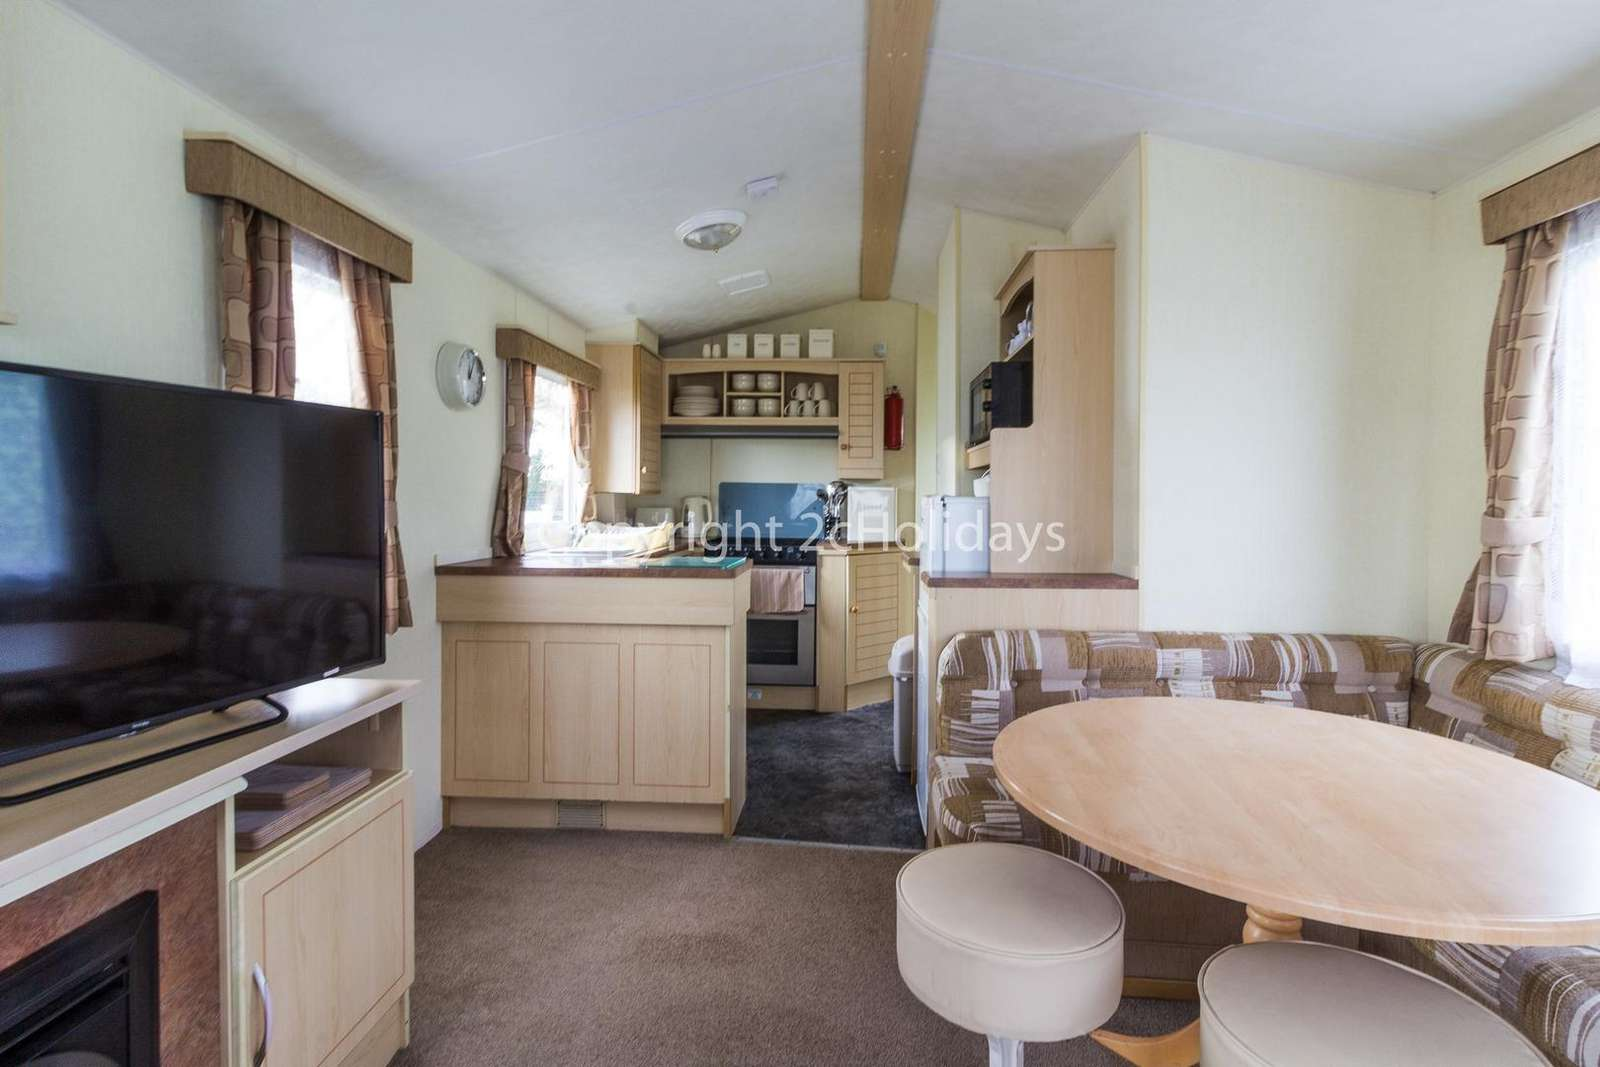 Don't forget to download your loyalty card after staying in this caravan for hire.